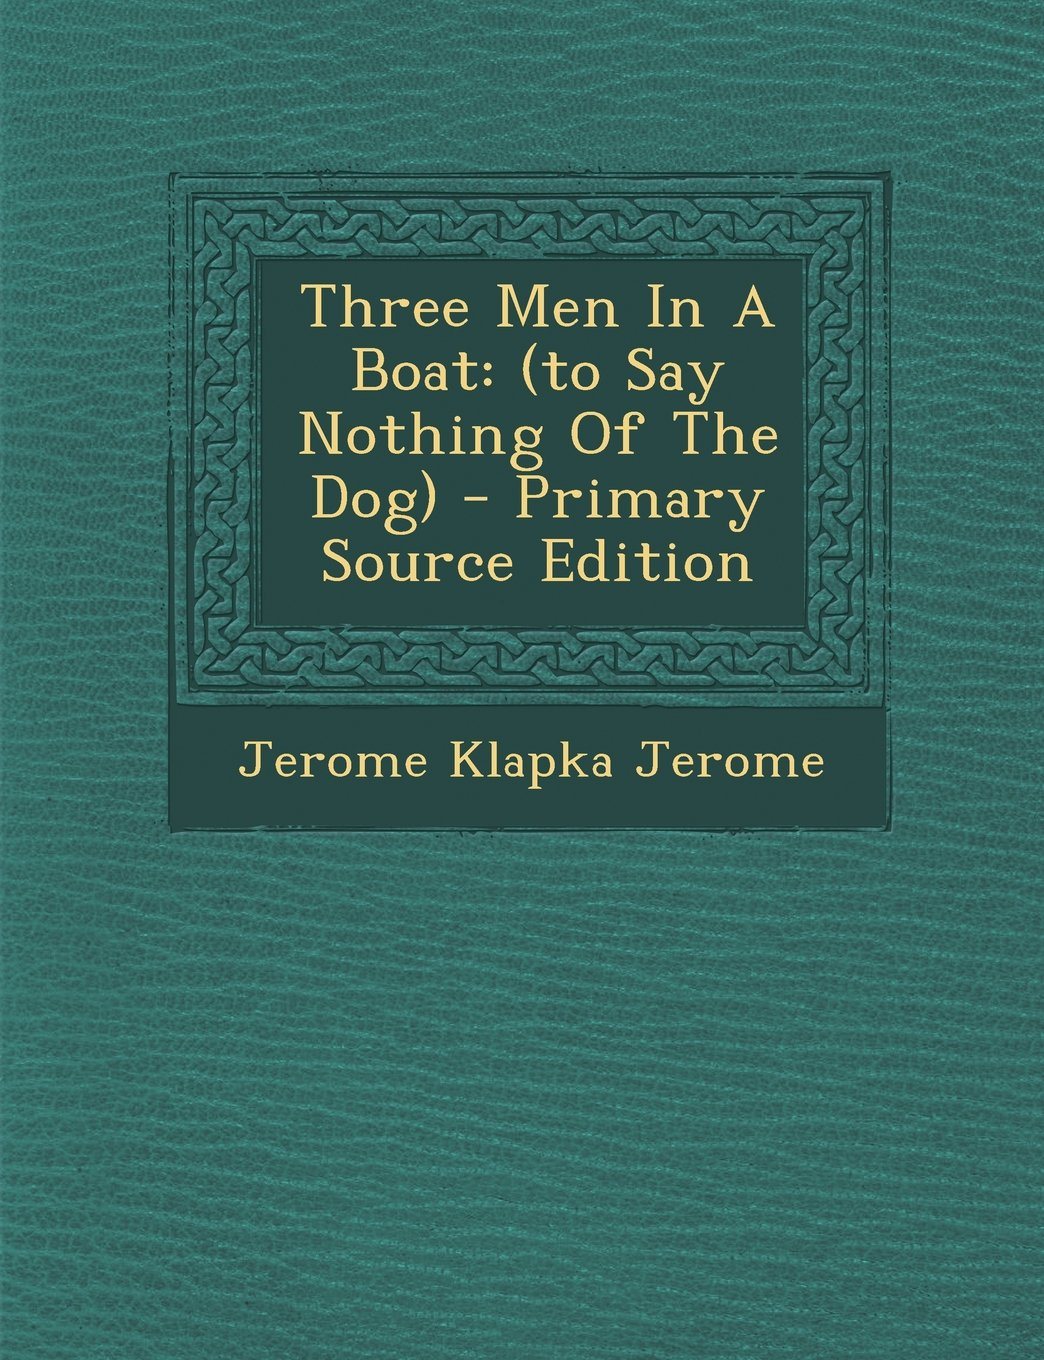 Three Men In A Boat: (to Say Nothing Of The Dog) PDF